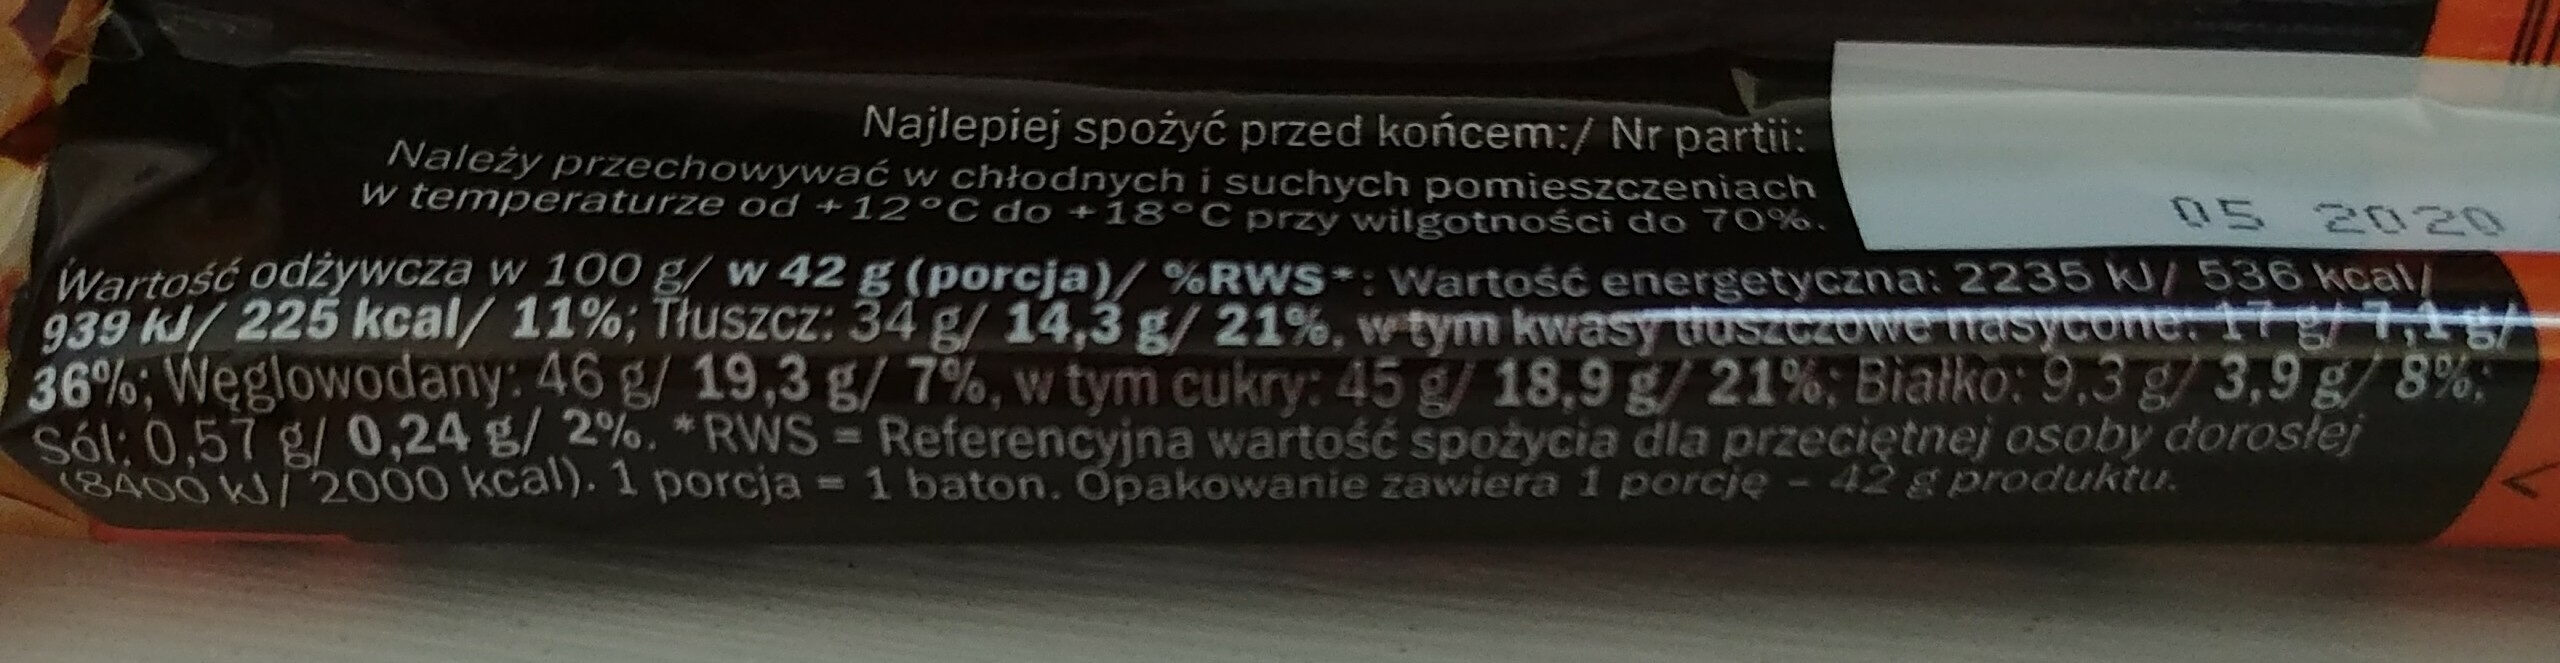 Baton Arcy Orzech - Nutrition facts - pl